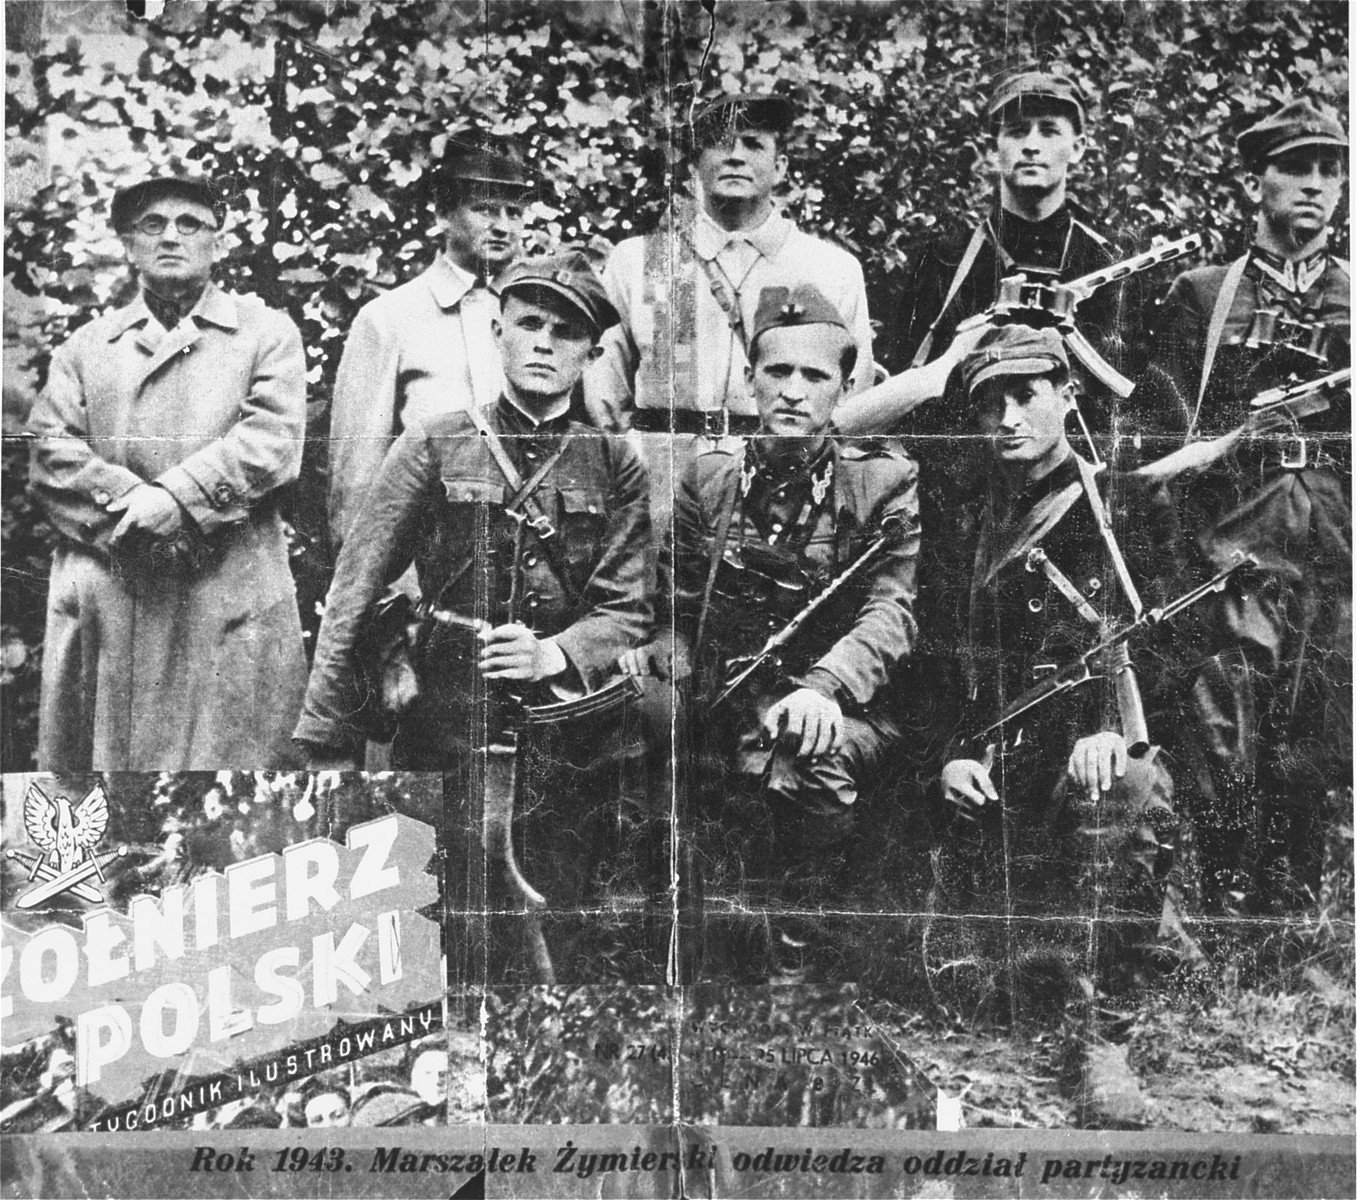 General Michael (Rola) Zymierski (top row, center), commander of the Polish communist Armia Ludowa, poses with a partisan unit in the Parczew Forest.  The partisan unit includes the Jewish physician, Michael Temchin (bottom right).